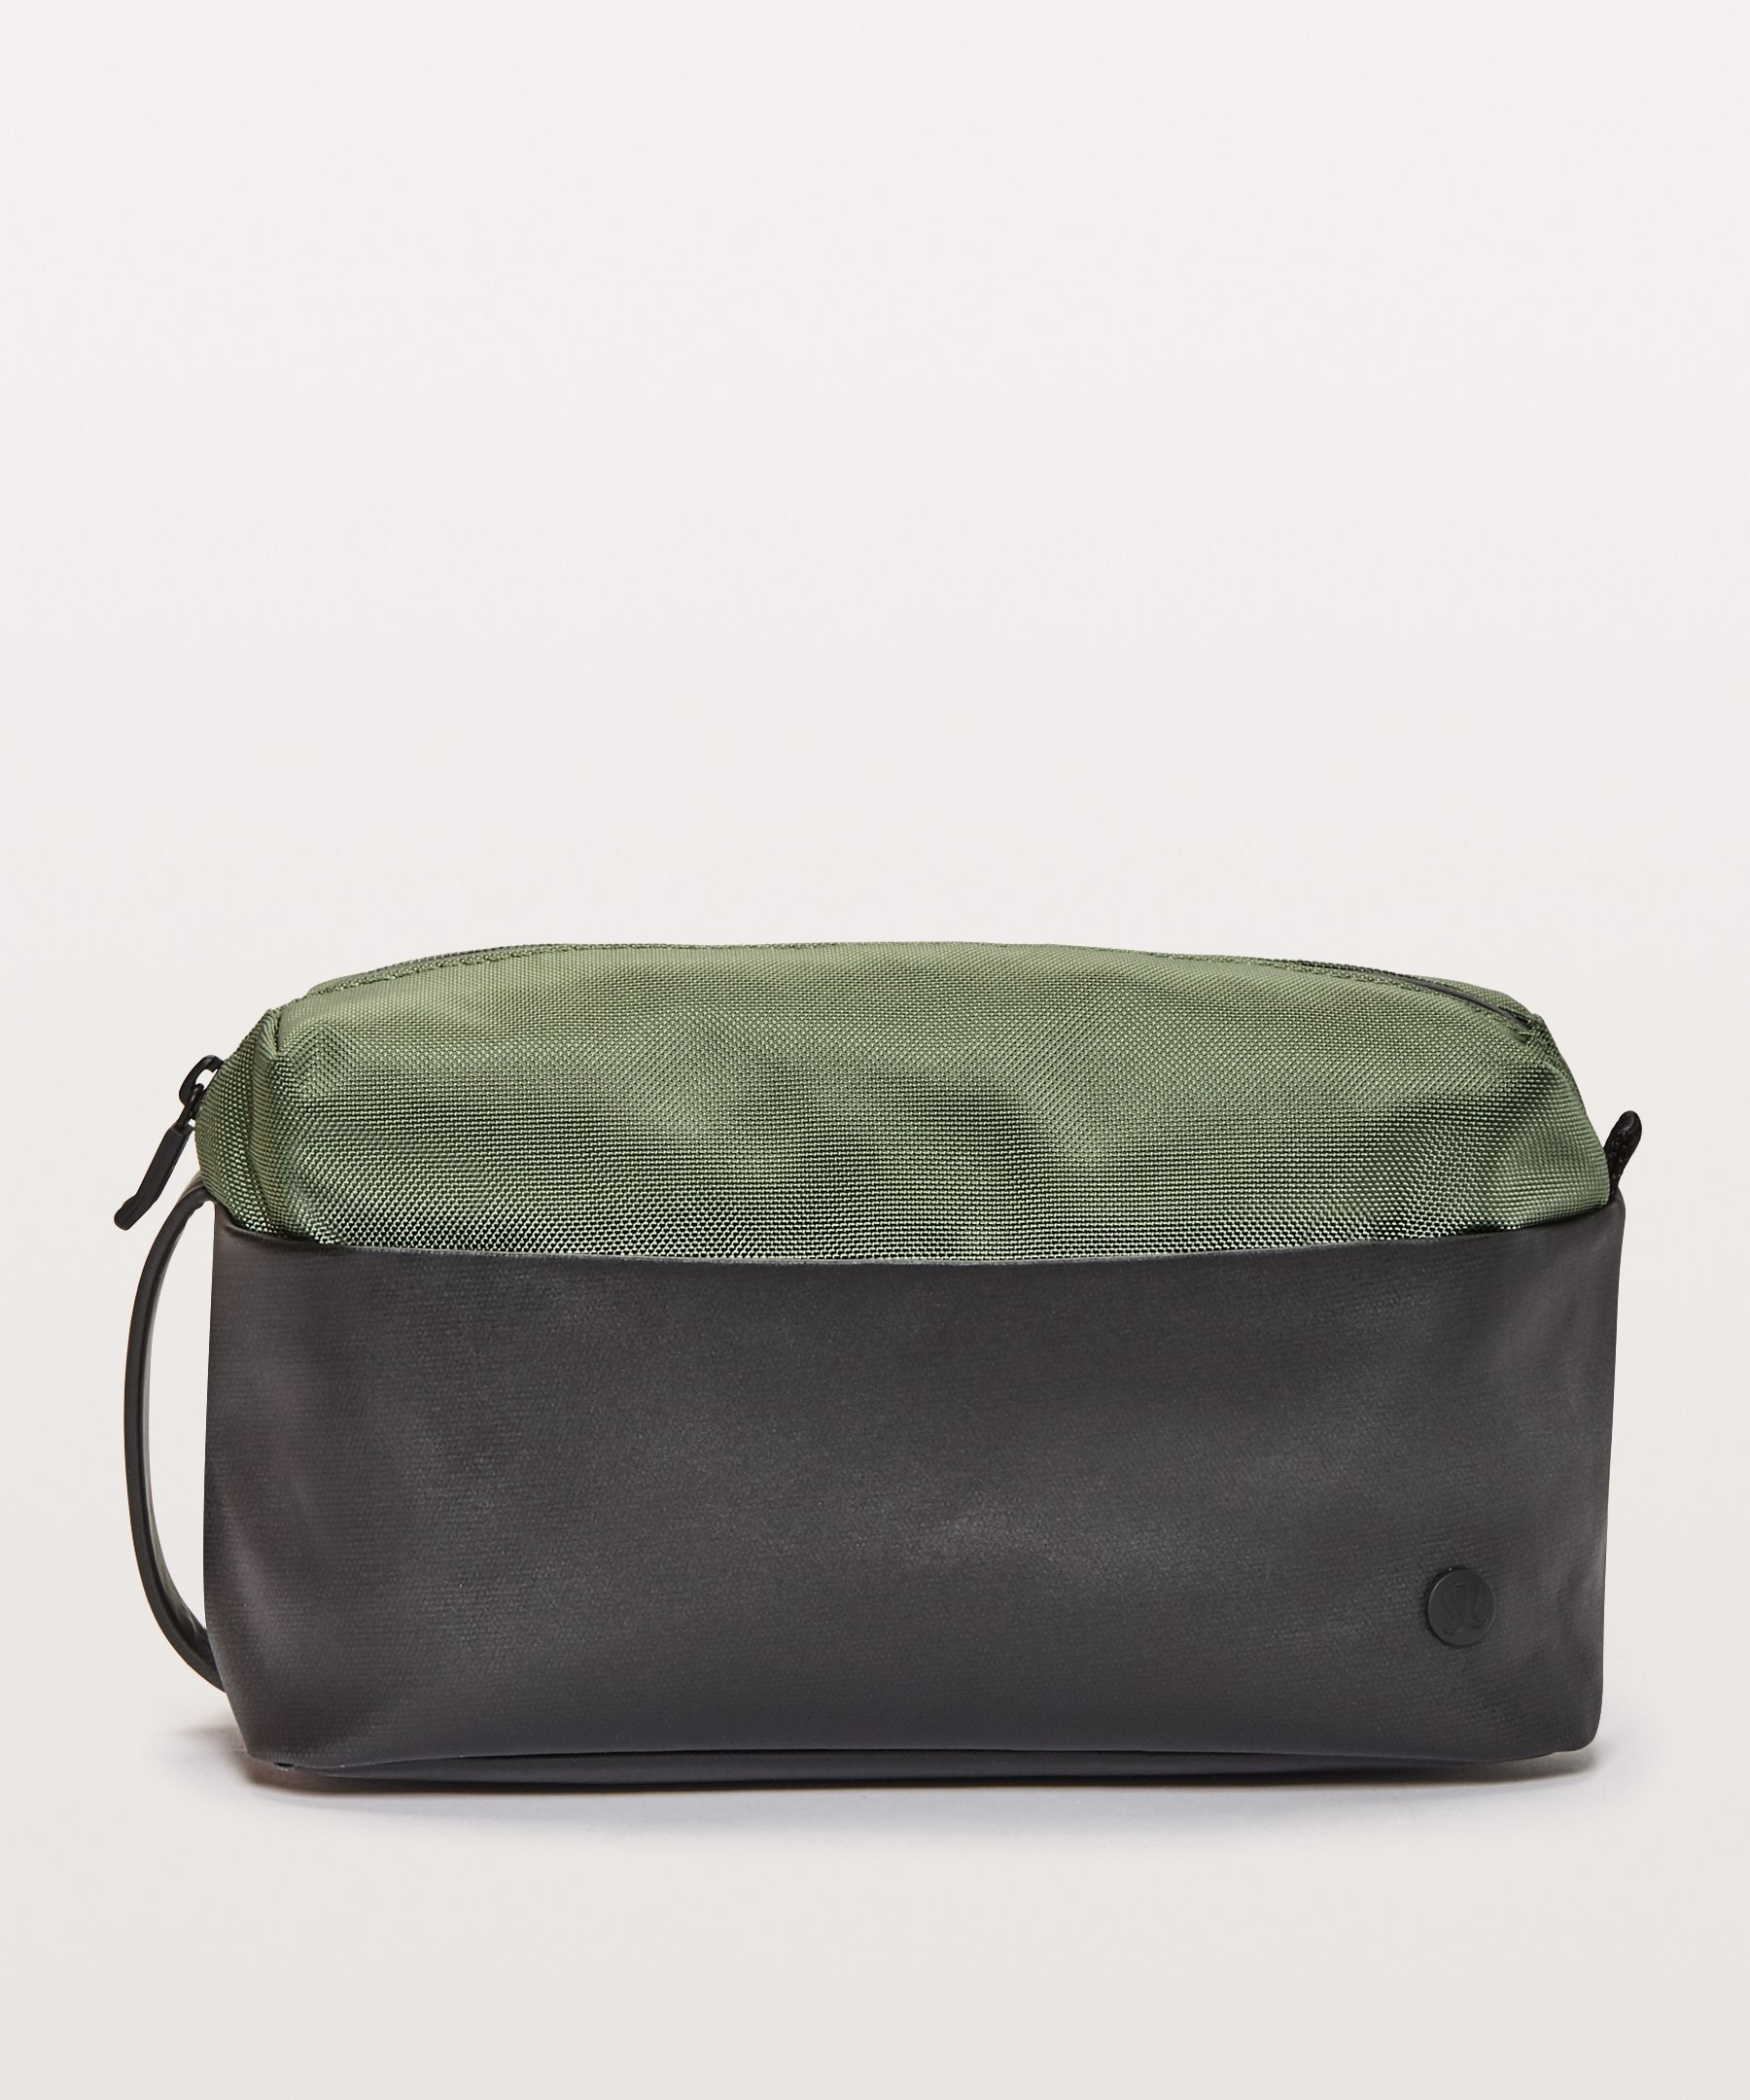 Shop the Dual Duty Dopp Kit  6L   Men s Bags. Whether you re at the gym or  jetting around the world, always have your essentials on hand. cb01cd137d